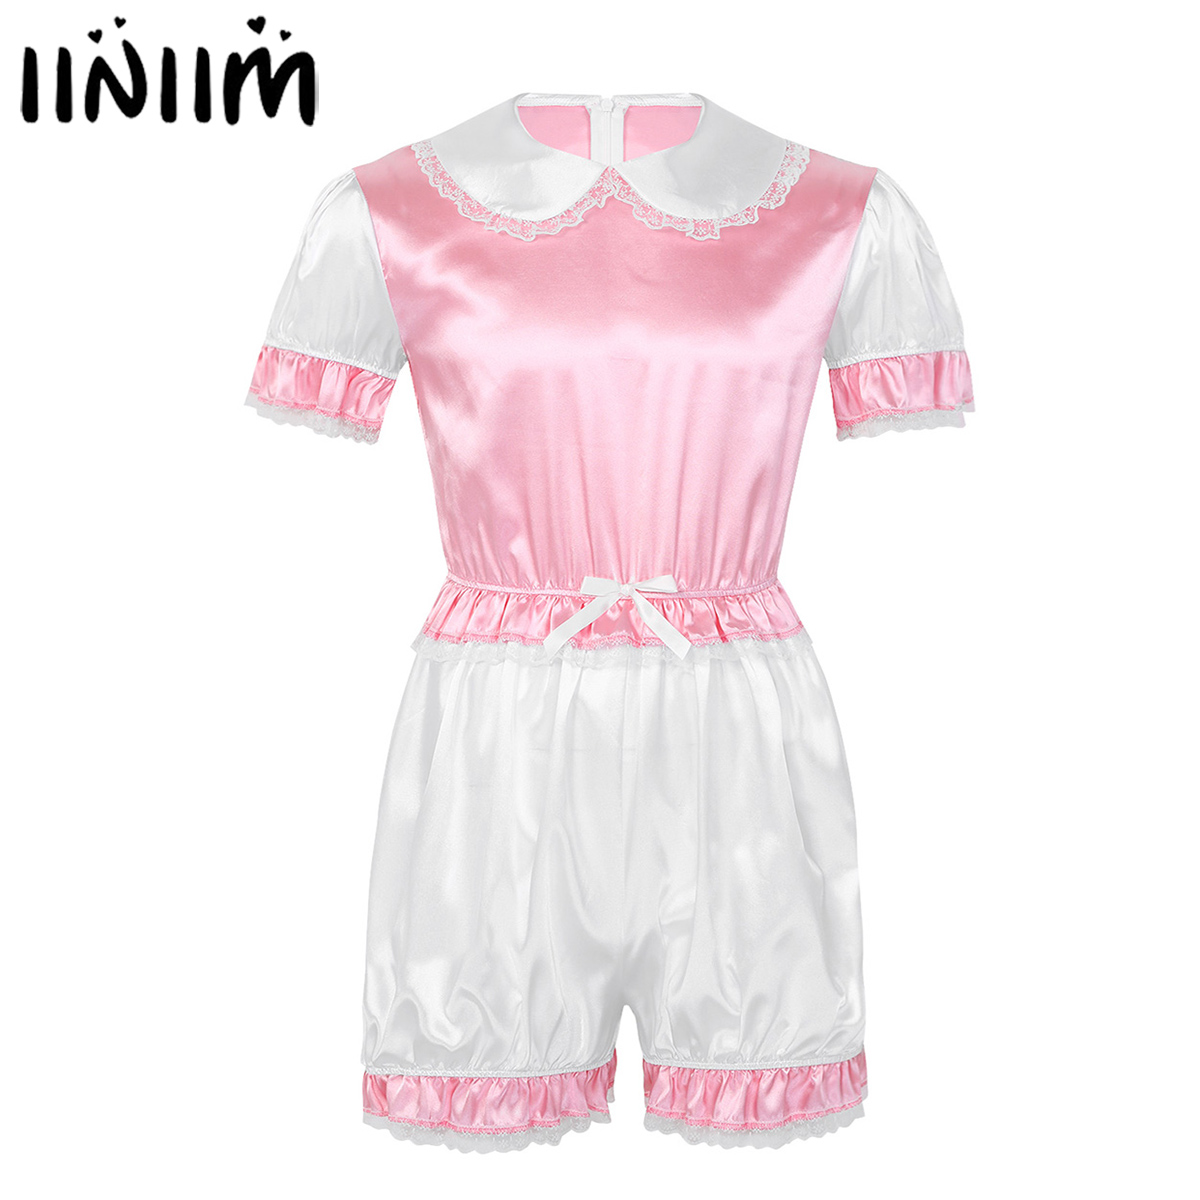 Mens <font><b>Sissy</b></font> <font><b>Lingerie</b></font> Satin Lace Babydoll Romper Exotic Adult Baby Cross Dresser Catsuit <font><b>Gay</b></font> Teddies Bodycon Body Suit Sexy Pajama image